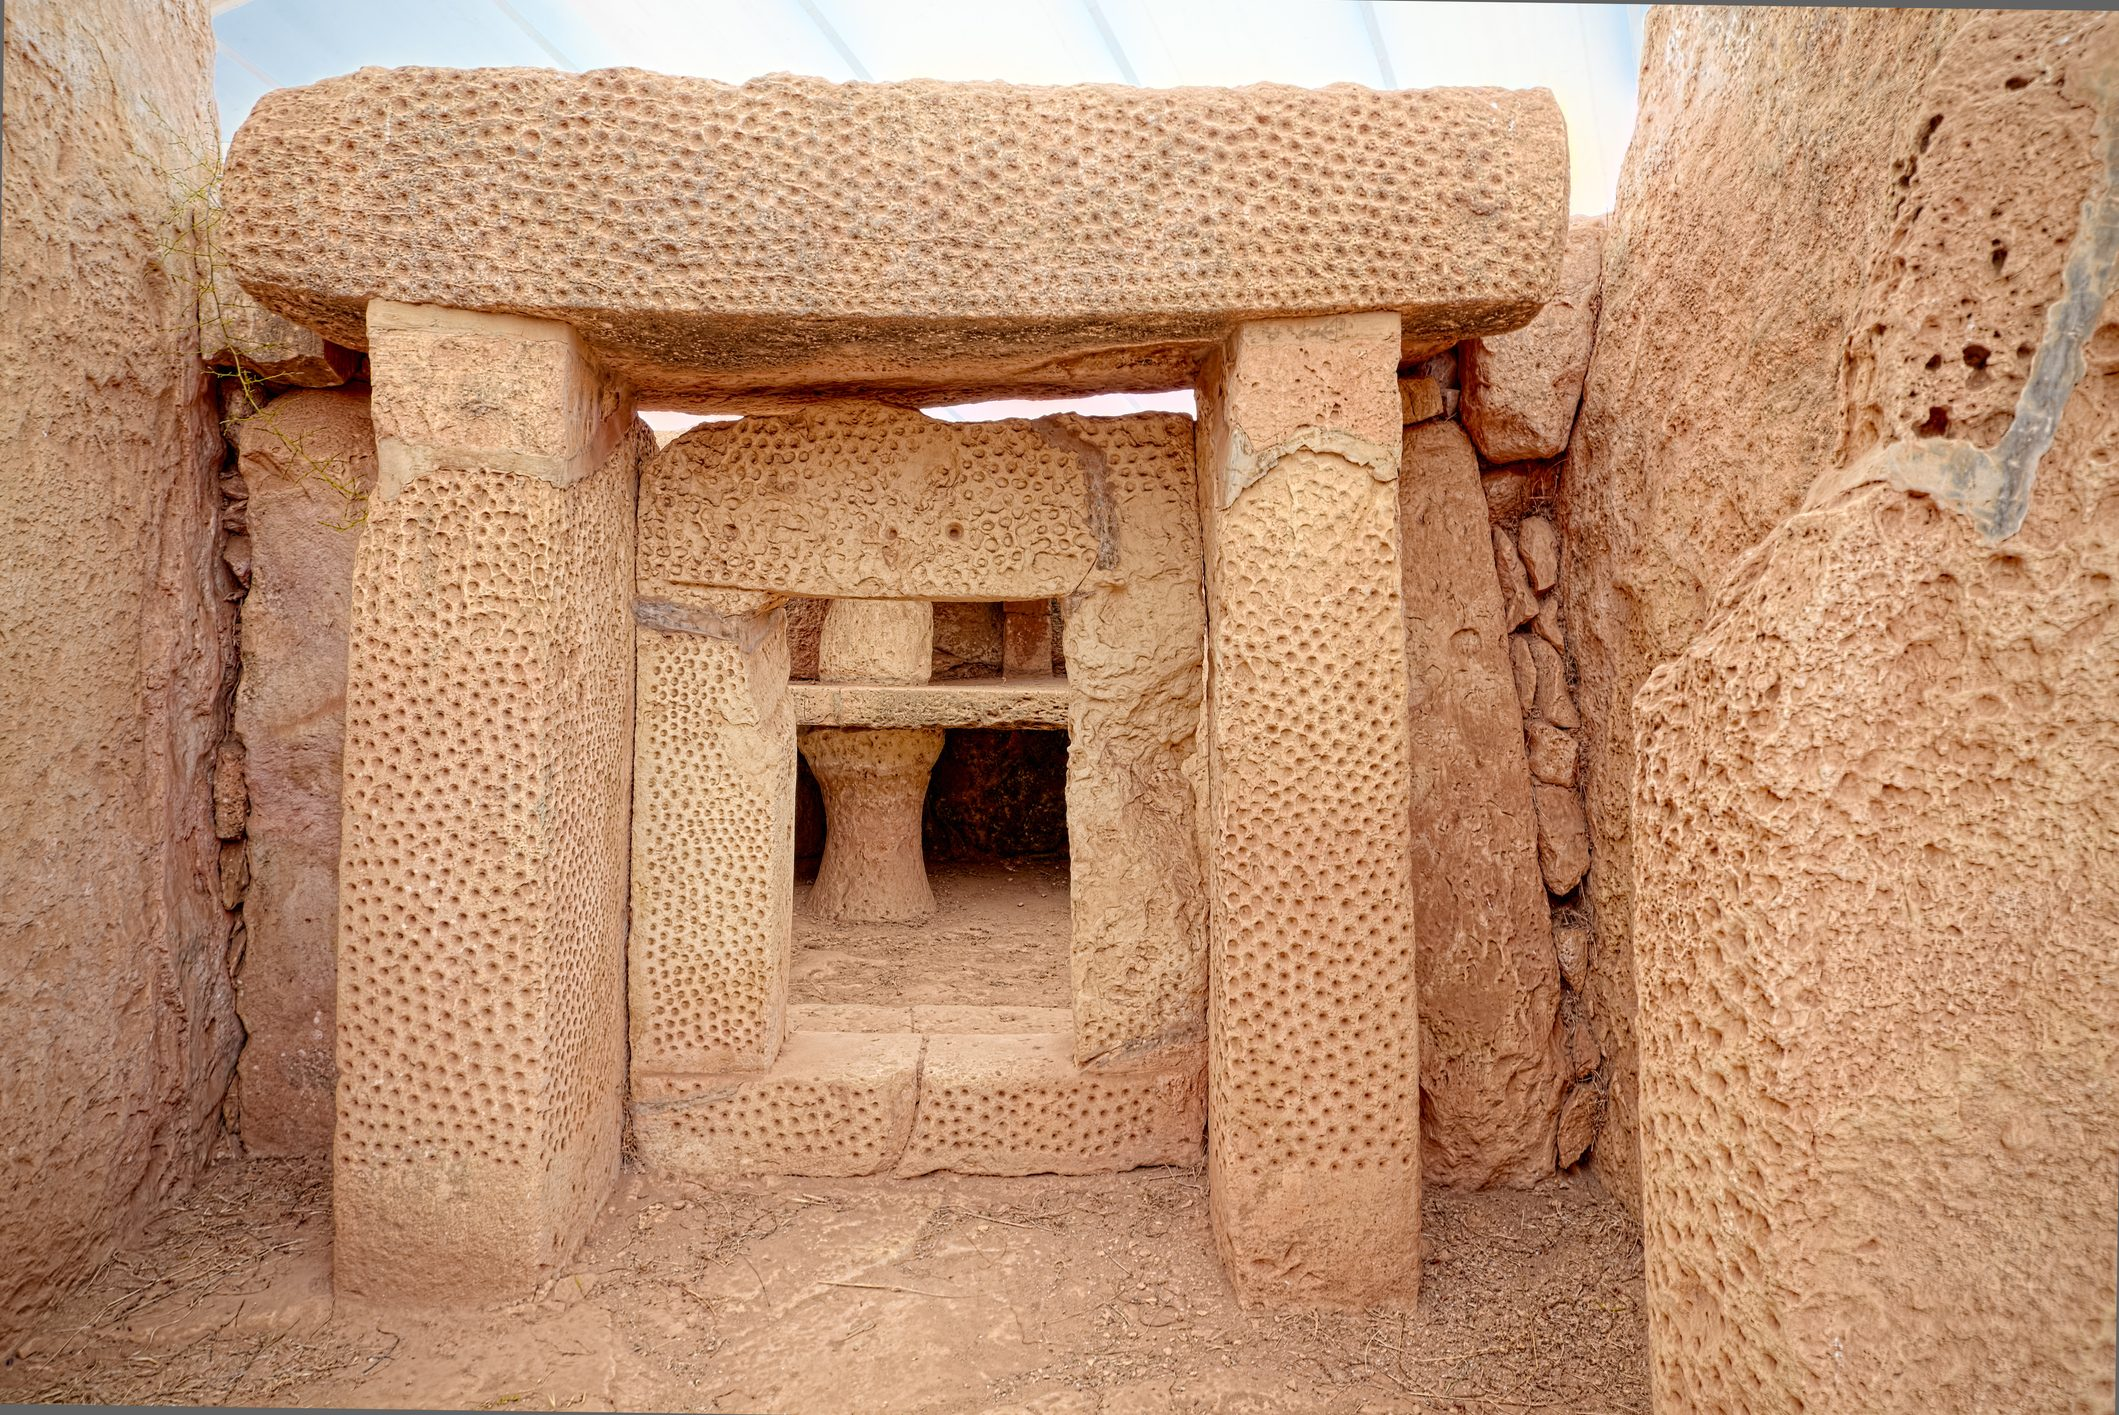 Details of Mnajdra megalithic temples of Malta (Qrendi)